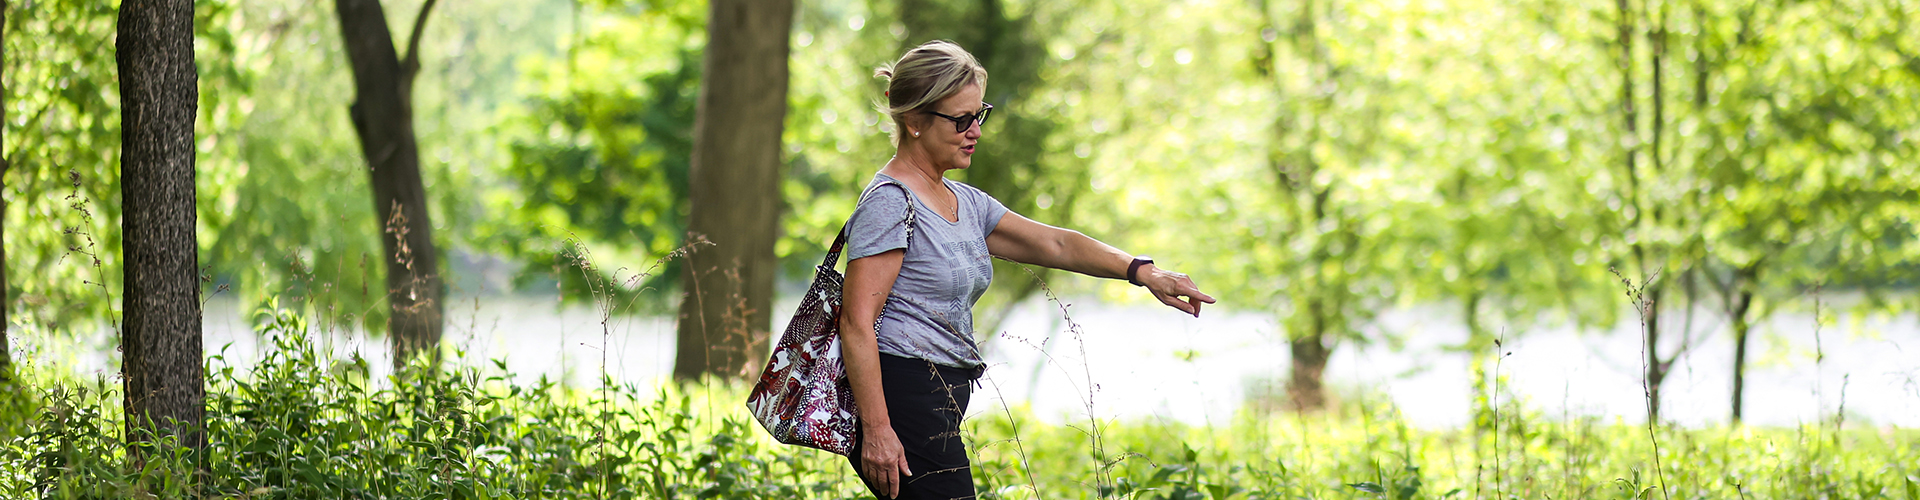 21-5-21 Free Guided Nature Walk LEP